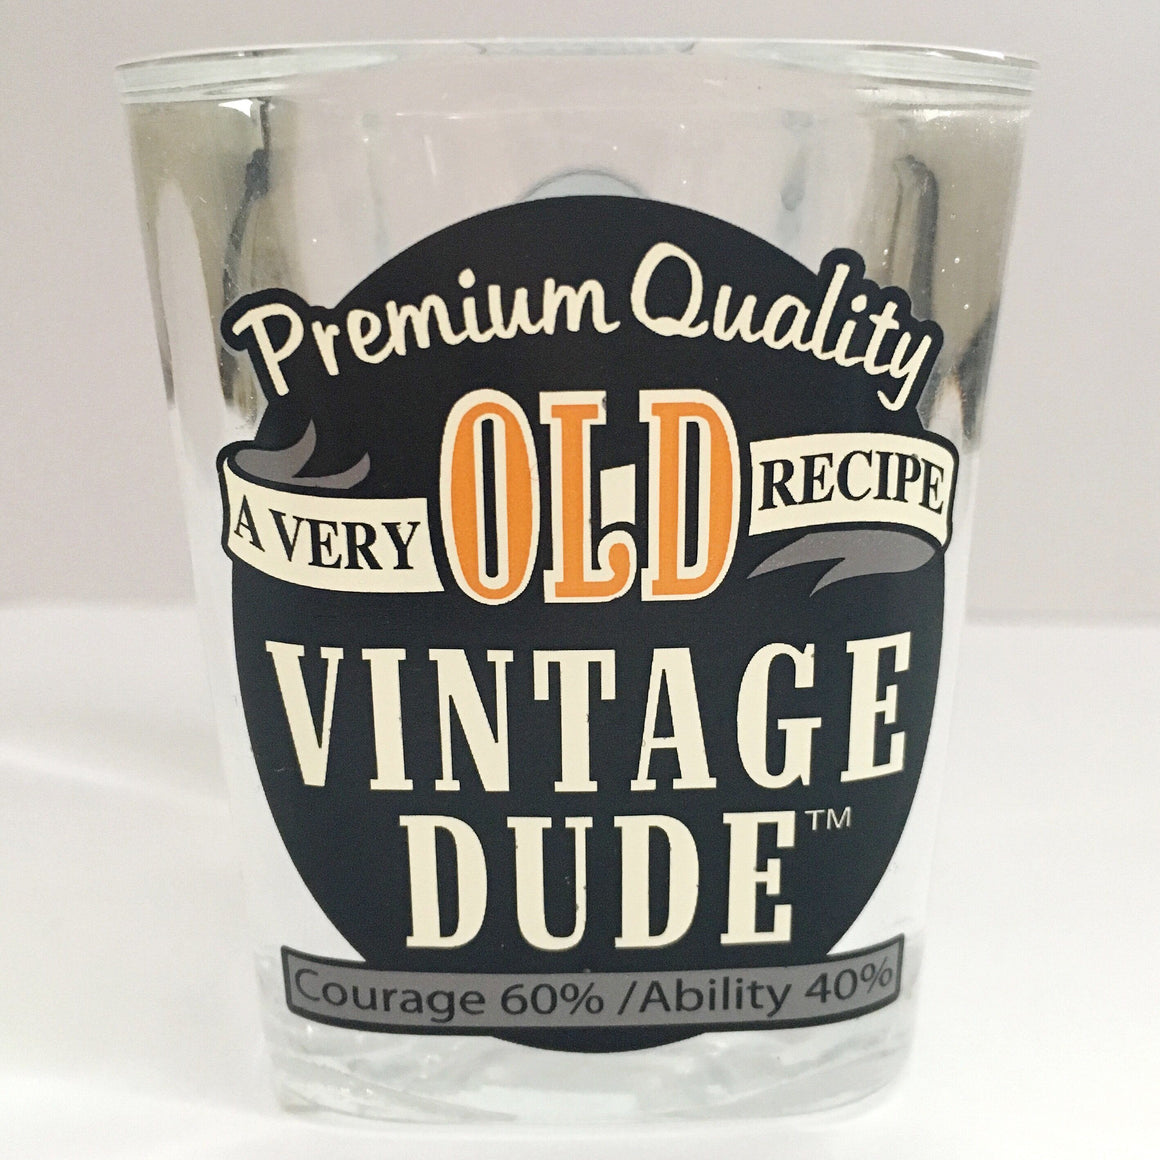 DRINKWARE - SHOT GLASS VINTAGE DUDE, Drinkware, Creative Converting - Bon + Co. Party Studio